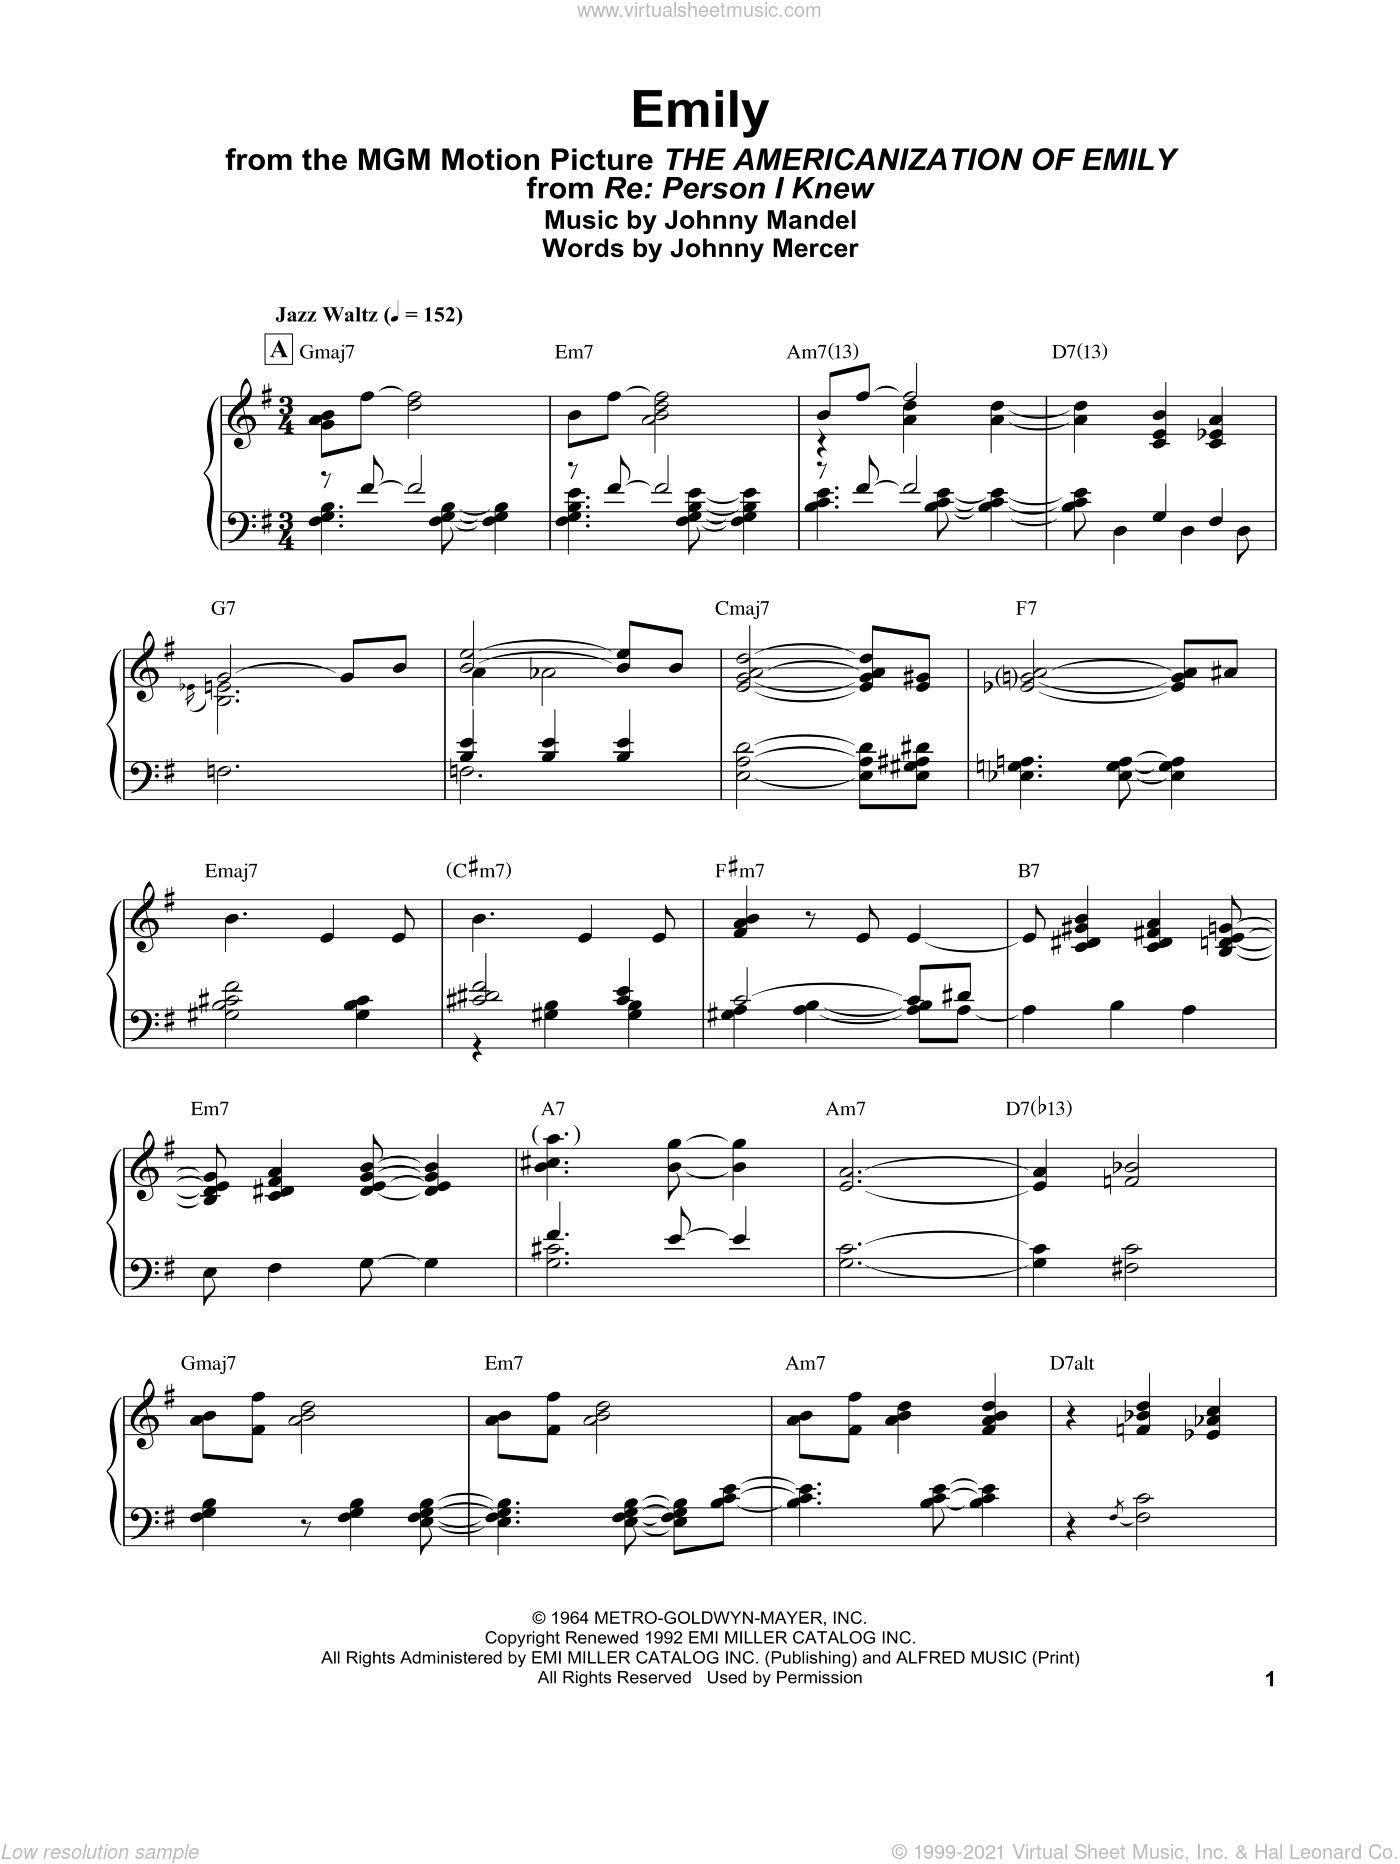 Emily (from The Americanization of Emily) sheet music for piano solo by Bill Evans, Johnny Mandel and Johnny Mercer, intermediate skill level